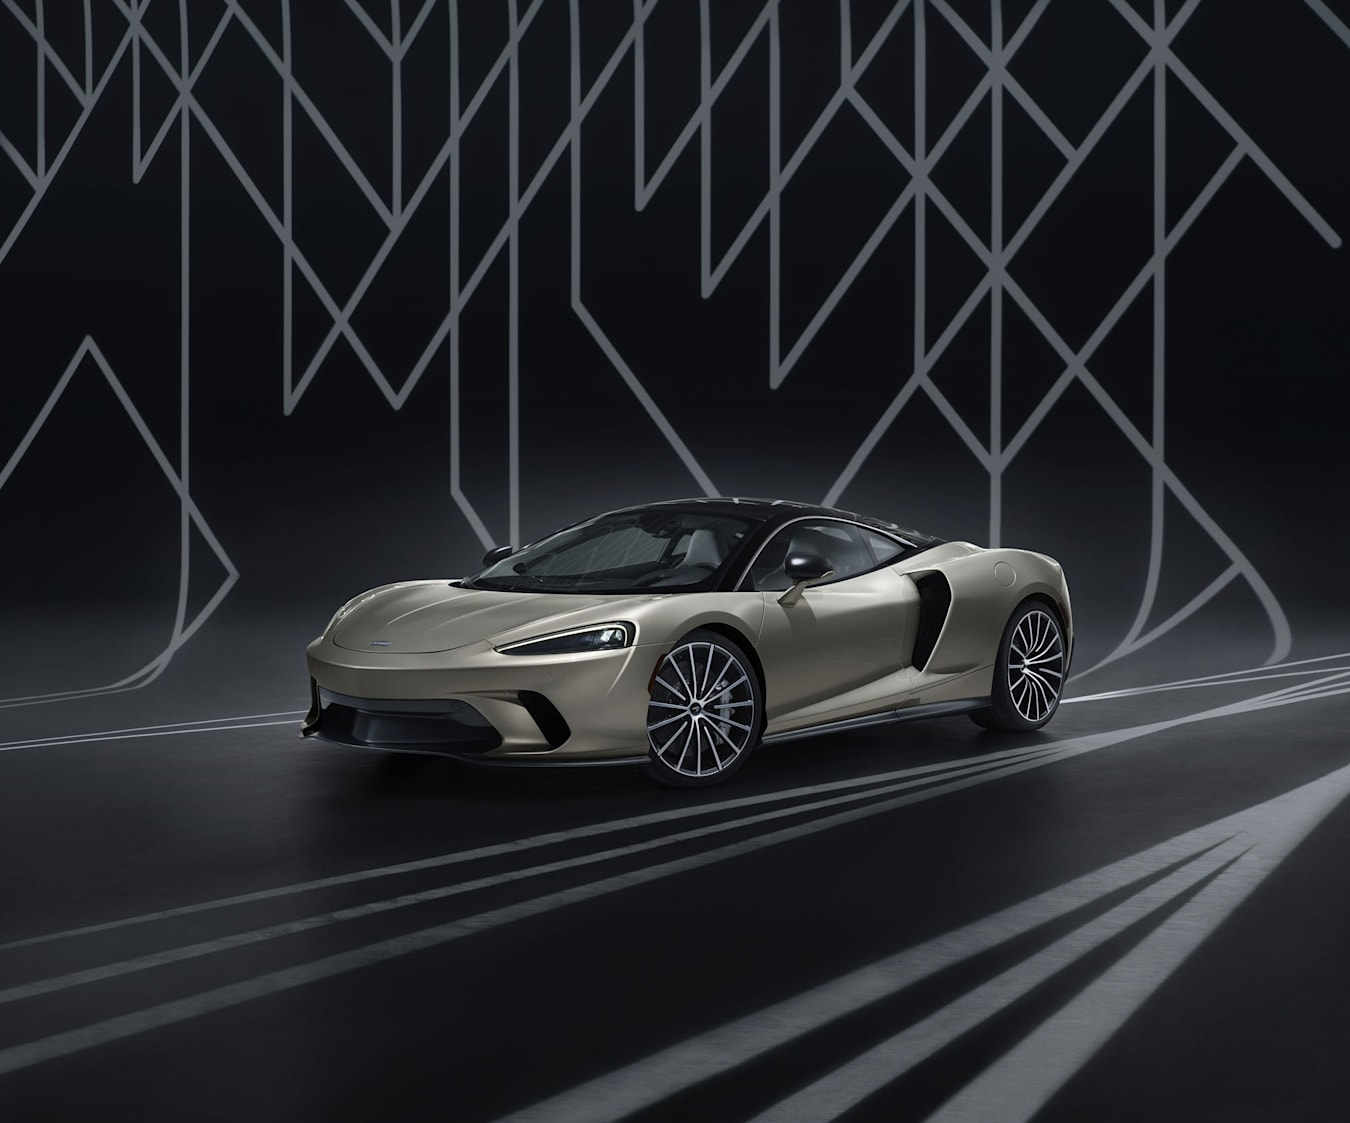 Large 11243 New Mc Laren GT By MSO At Pebble Beach Concours D Elegance Jpg